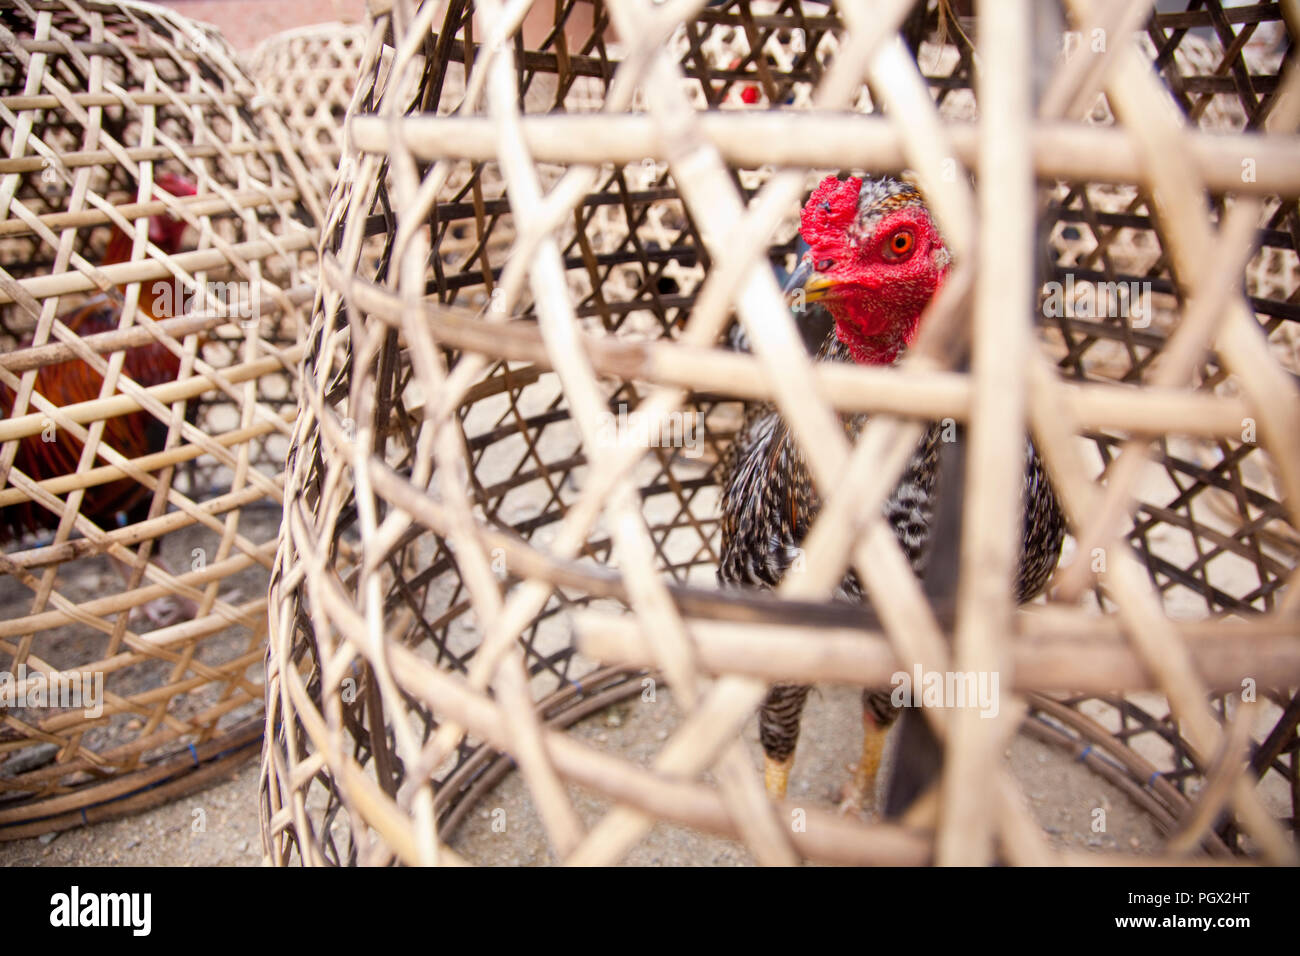 Chicken for sale in an Indonesian village. - Stock Image